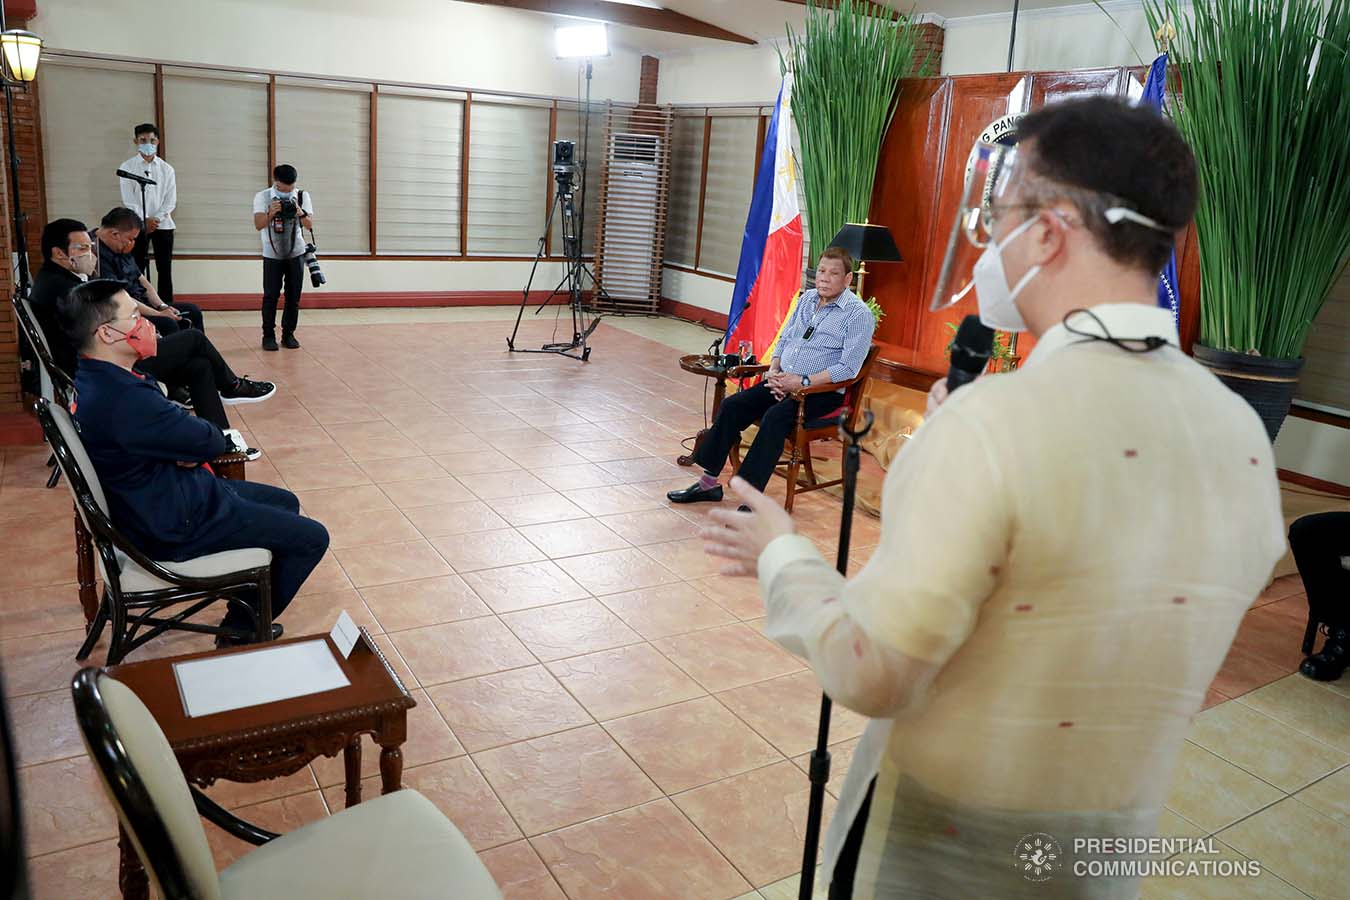 President Rodrigo Roa Duterte listens as House Speaker Alan Peter Cayetano responds to the discussion during a meeting with Speaker Cayetano, Marinduque Representative Lord Allan Jay Velasco and several members of the House of Representatives at the Malacañang Golf (MALAGO) Clubhouse in Malacañang Park, Manila on September 29, 2020. The President called on Cayetano and Velasco, who were accompanied by their respective partymates and supporters in the Lower House, to discuss matters affecting Congress lately. ROBINSON NIÑAL/PRESIDENTIAL PHOTO